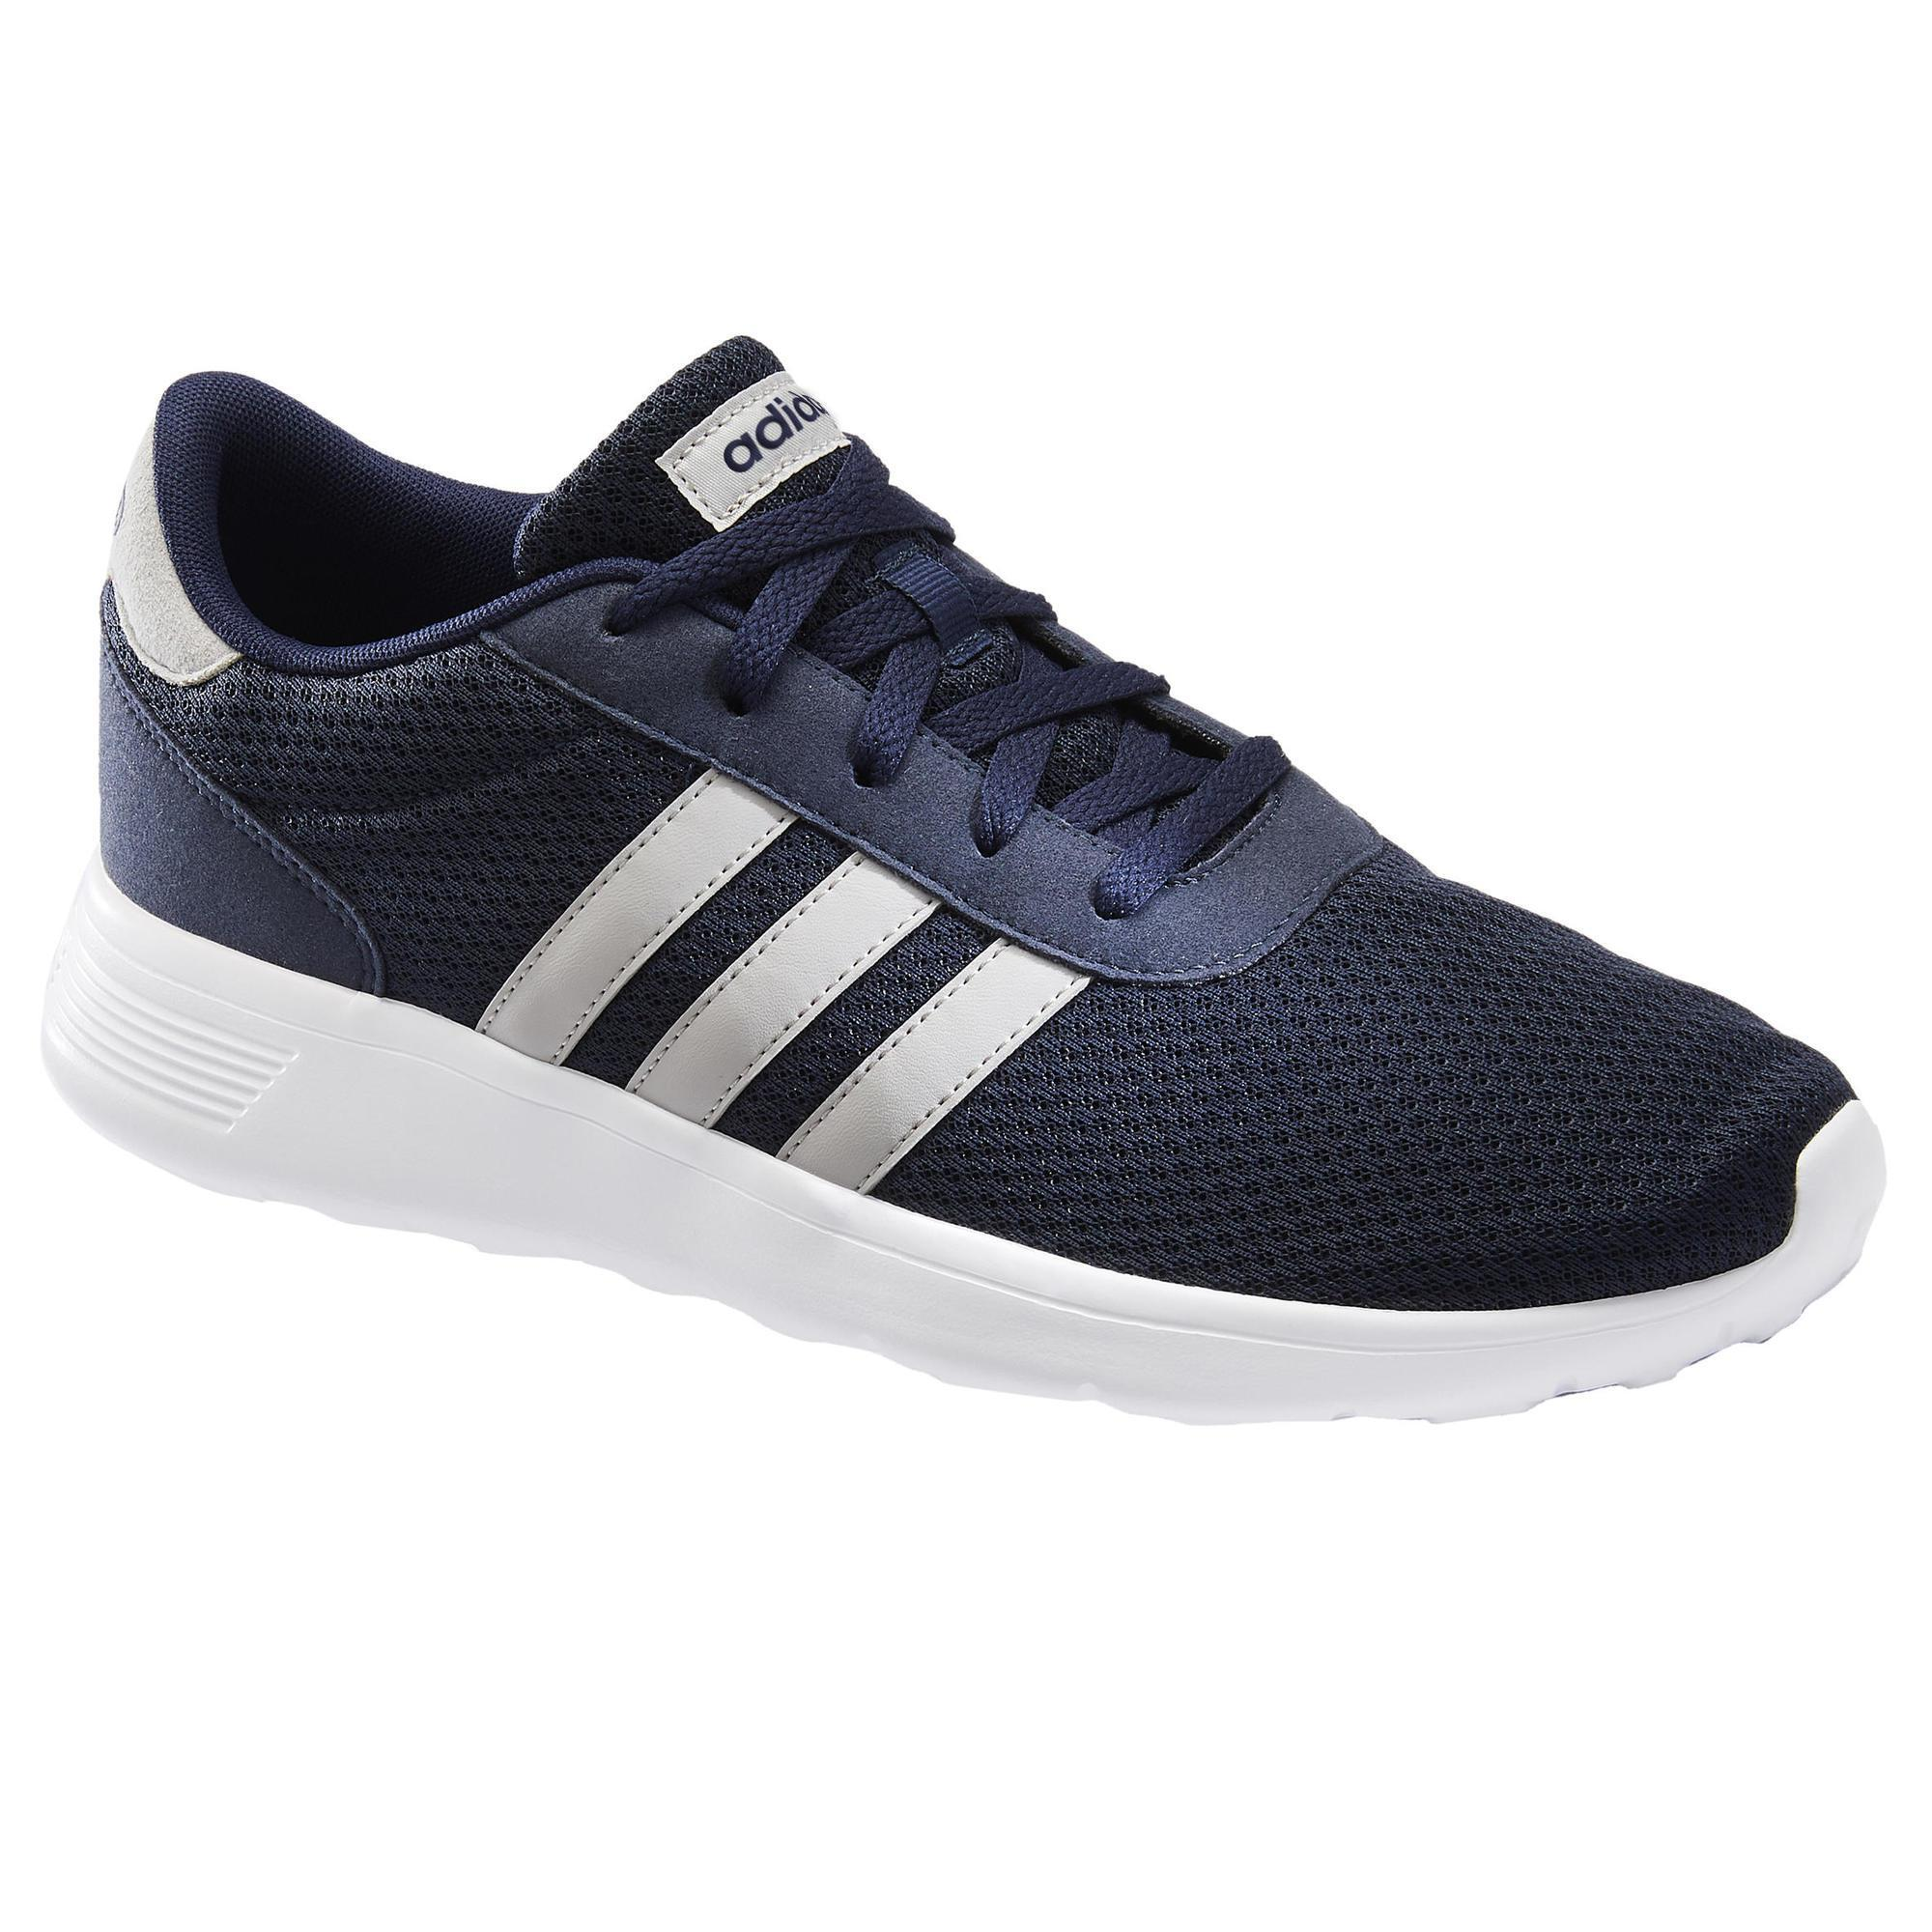 Adidas | Decathlon